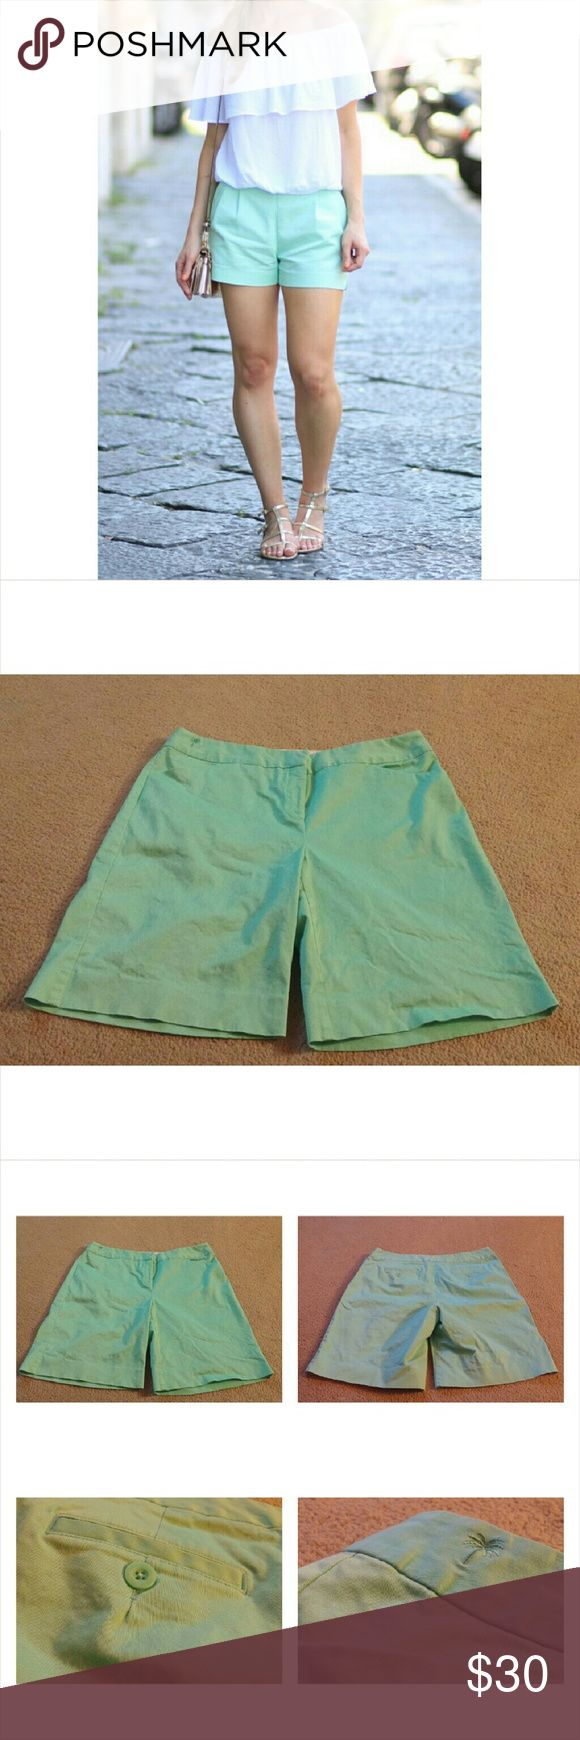 """Lilly Pulitzer Mint Green Shorts Lilly Pulitzer Mint Green Shorts. Inseam measures 9"""". Waist laying flat measures 17"""". There are a few tiny marks near the left front pocket. Would not come out in the wash, as seen in the last photo collage. The model in the last photo is just for outfit inspiration. Lilly Pulitzer Shorts"""